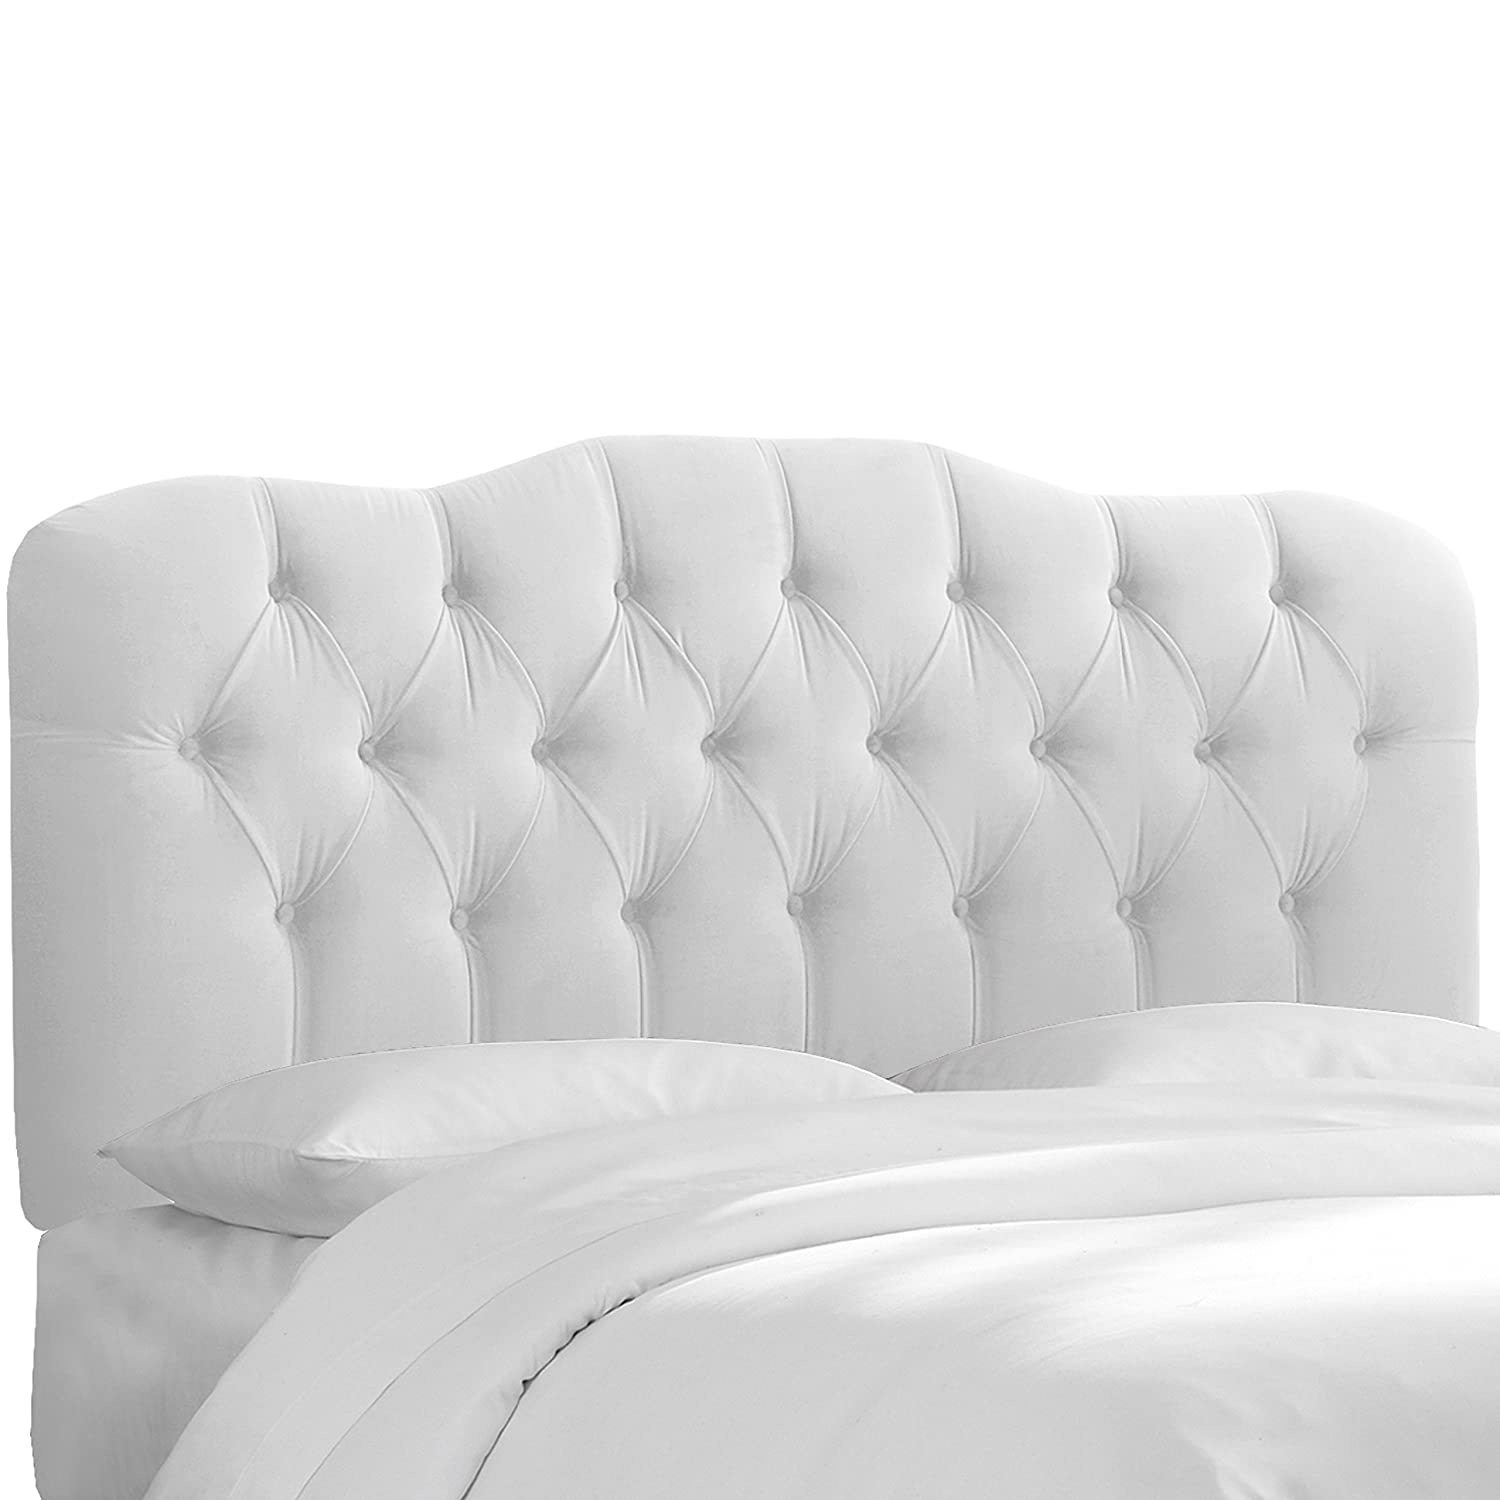 headboard how king mirrored of headboards chandelier comfy upholstered to crystal fr leather size an bedroom for decoration collection ideas furniture clear with bedding white elm nightstand luxury design gray tufted bench shade wood make cheap west frame and padded twin full your silhouette